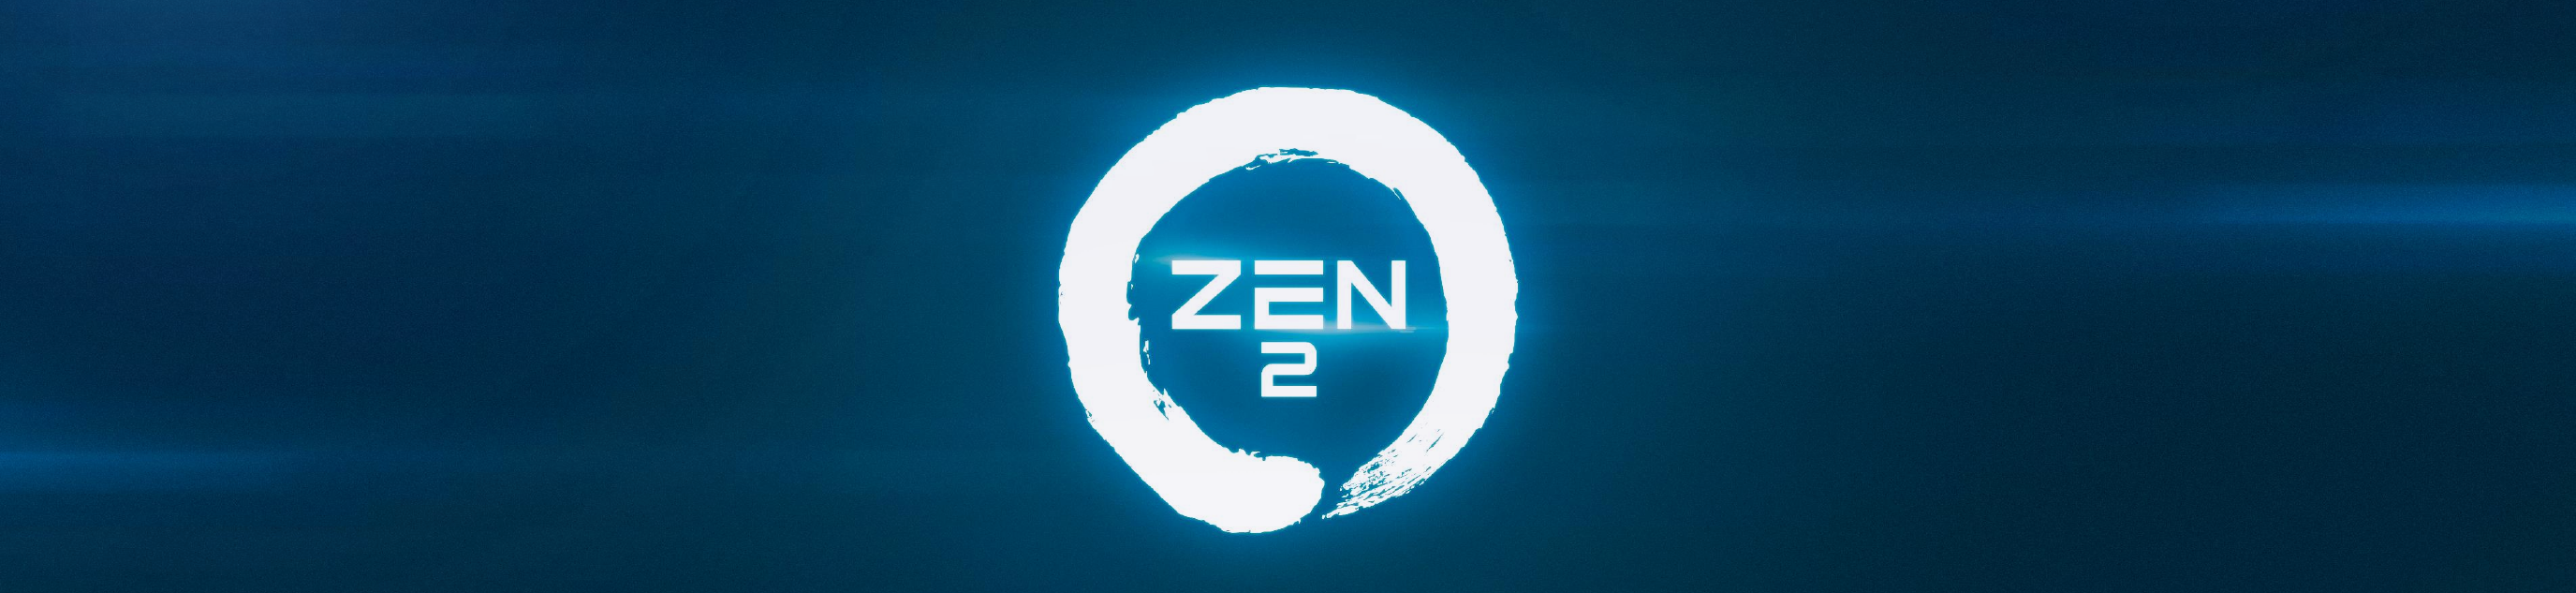 Amd Discloses Initial Zen 2 Details Wikichip Fuse Next Is The Itself I Will Include A Diagram Of Its Location In Succeeds Design Targets Tsmc 7 Nm Process Node Evaluated Both 10 And Choice To Go With Boiled Down Much